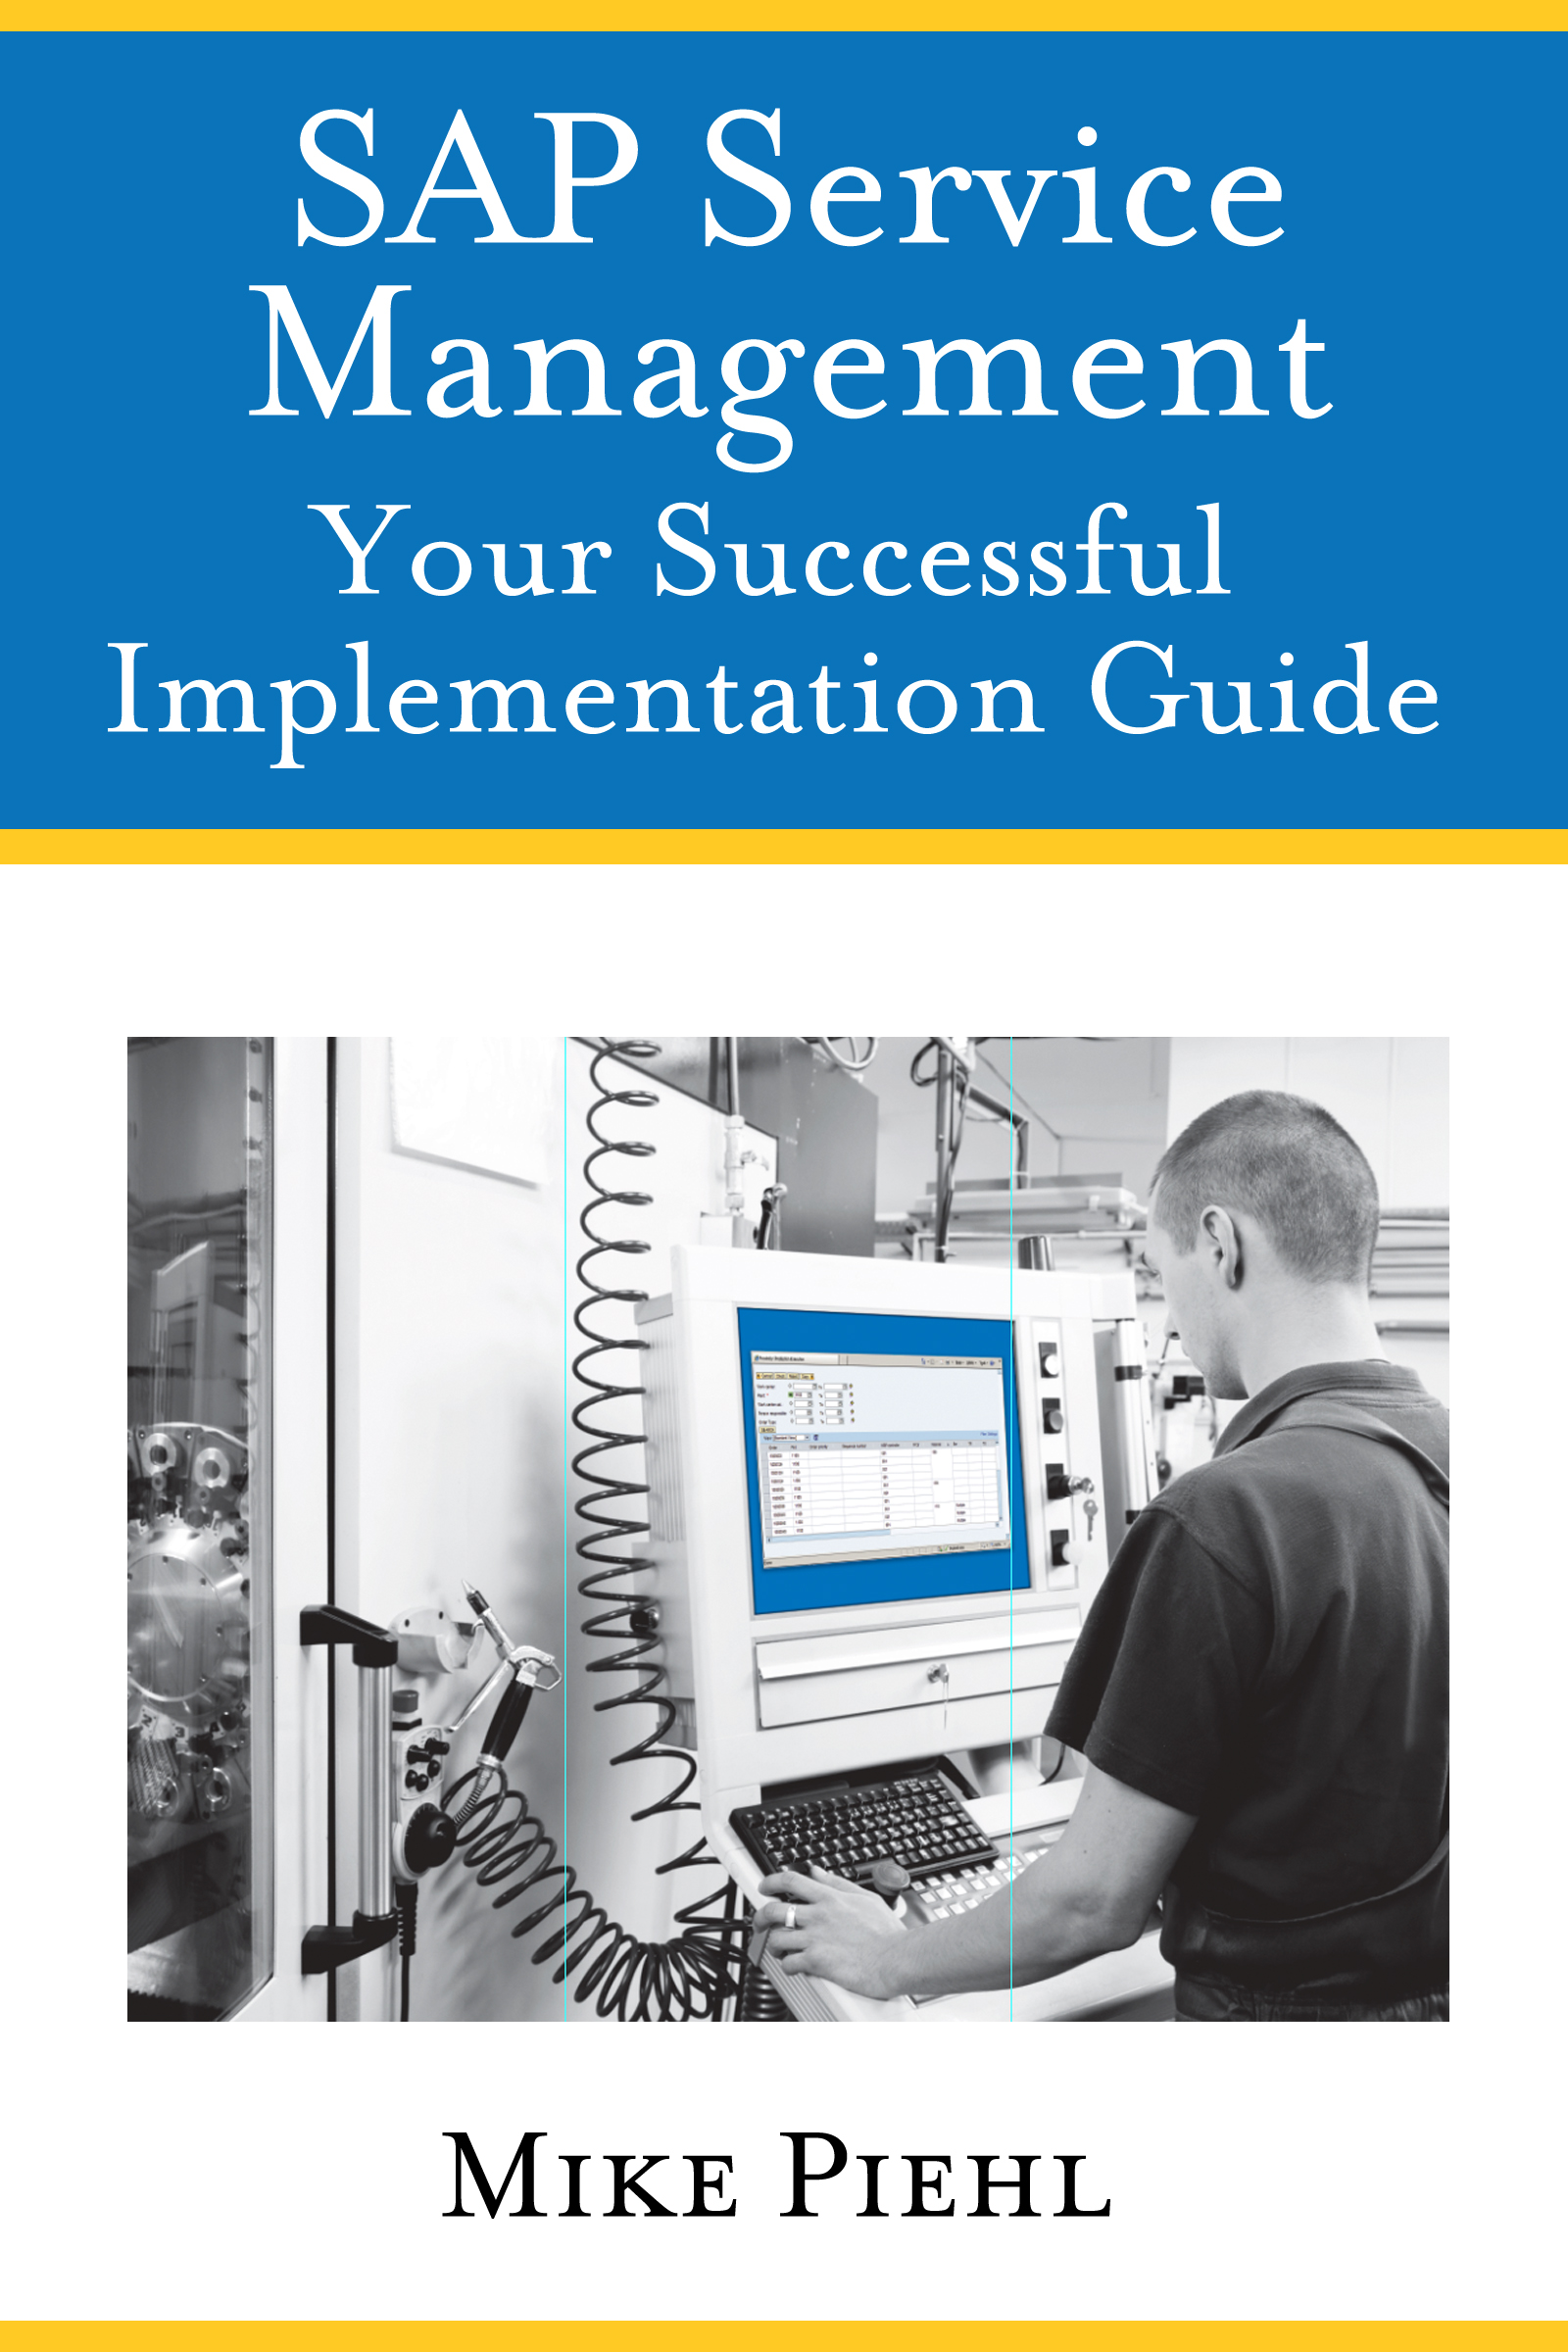 Your Successful Implementation Guide